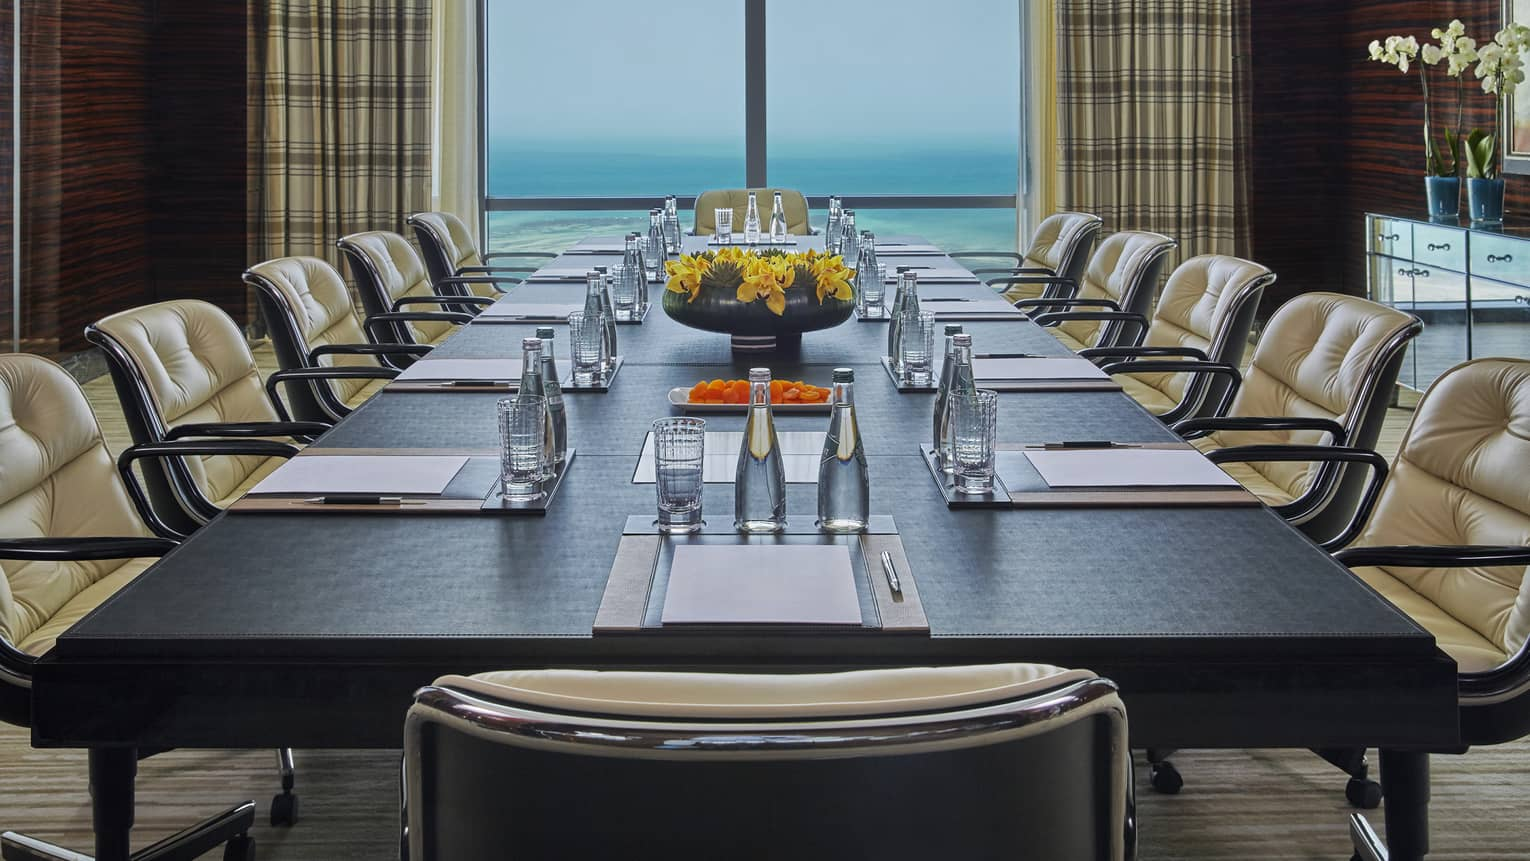 Large boardroom meeting table lined with plush leather chairs in front of window with ocean view